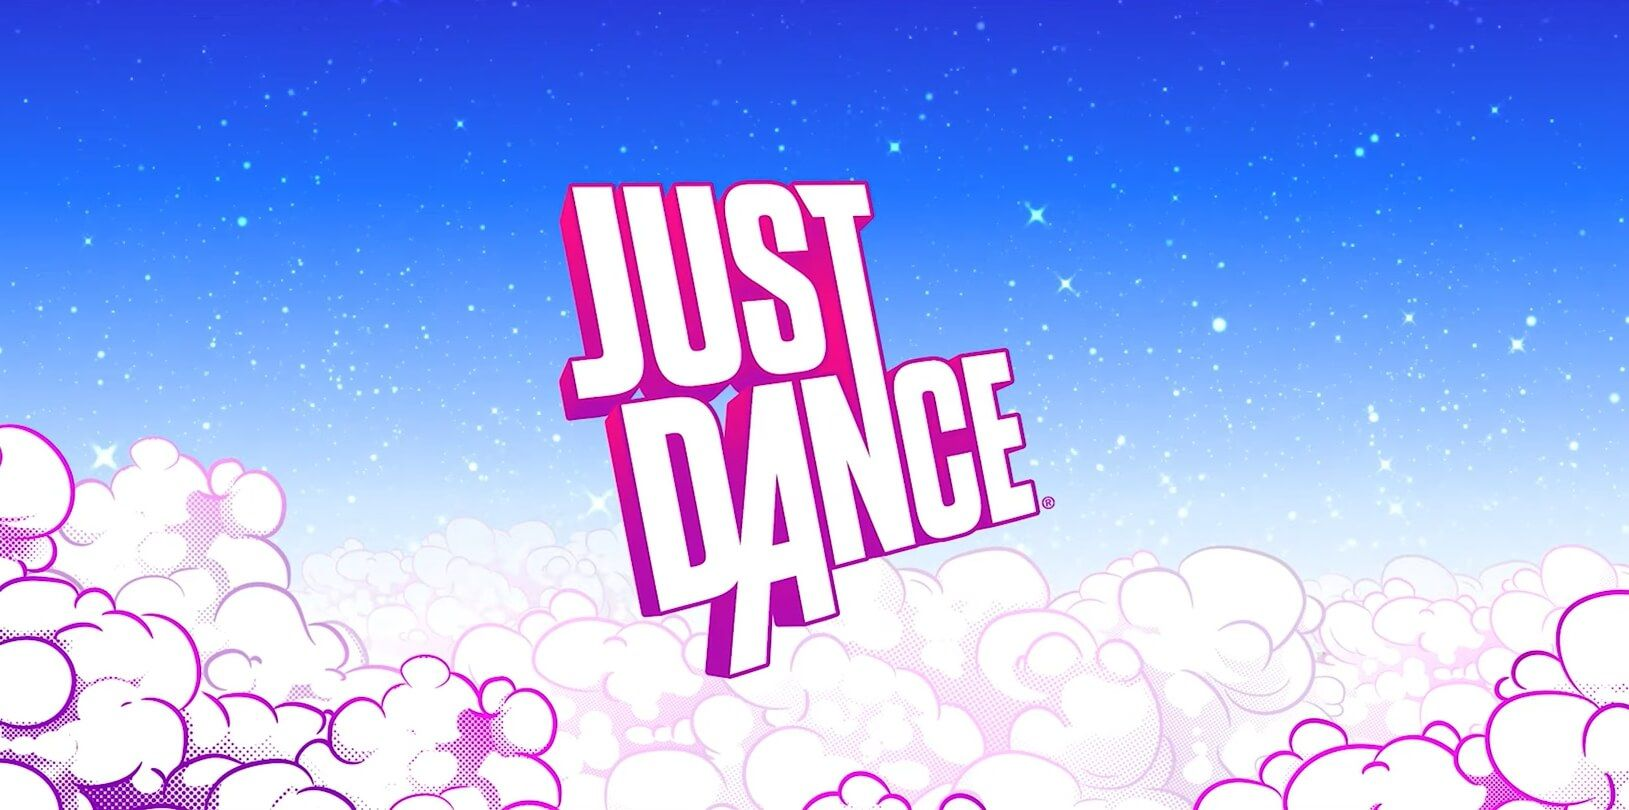 Just Dance 2020 Wallpapers   Top Just Dance 2020 Backgrounds 1629x810